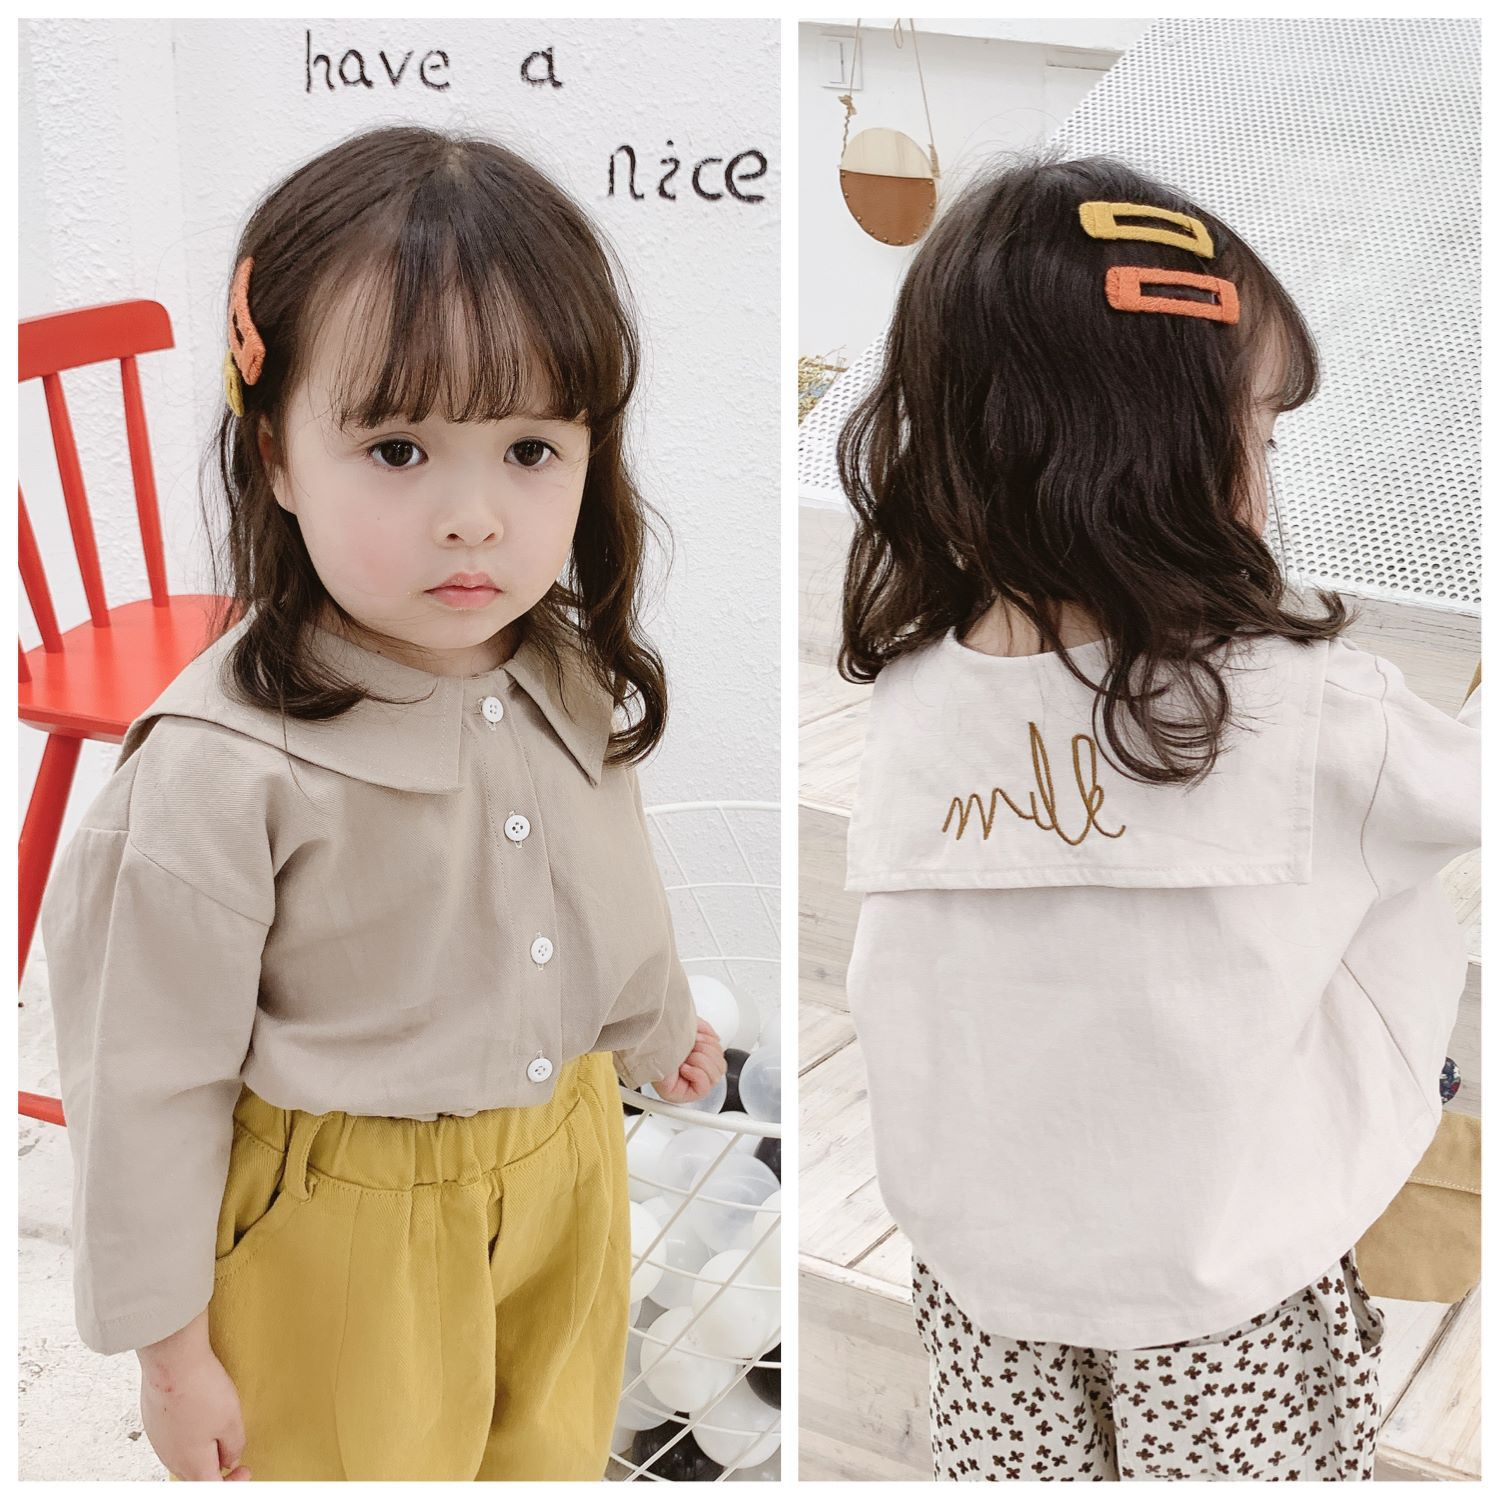 Spring 2019 New Kids Korean Cotton Embroidered Big Turn-collar Shirt 19017 Girls Long Sleeve BlouseSpring 2019 New Kids Korean Cotton Embroidered Big Turn-collar Shirt 19017 Girls Long Sleeve Blouse